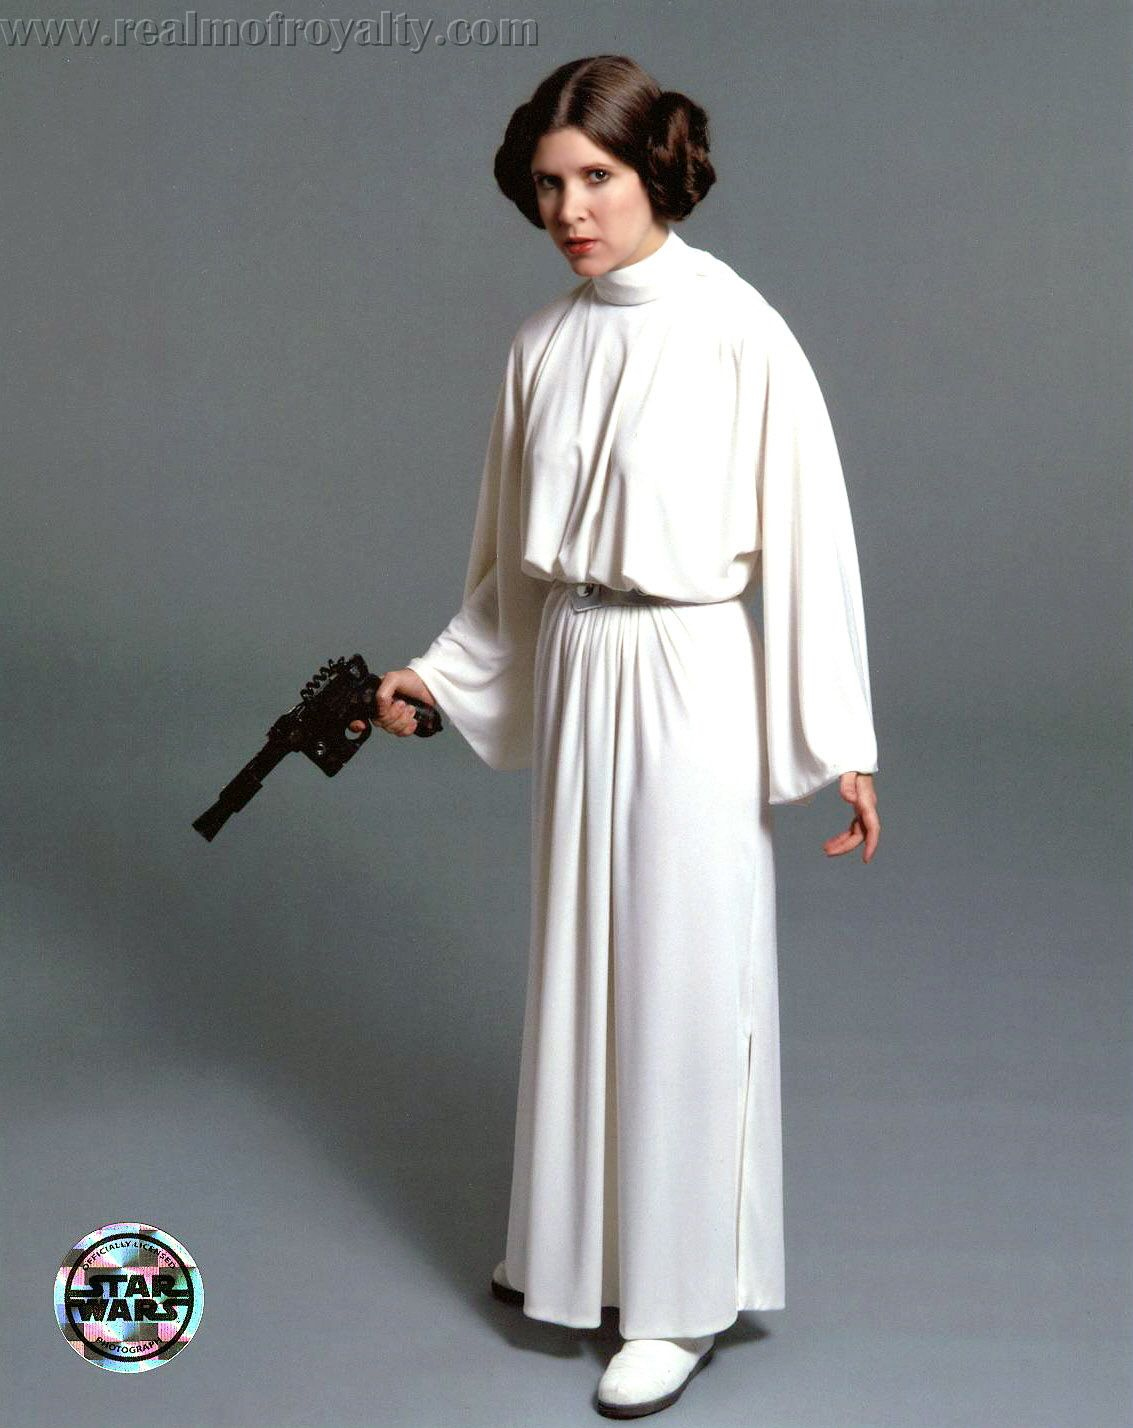 princess leia white dress carrie fisher google search. Black Bedroom Furniture Sets. Home Design Ideas